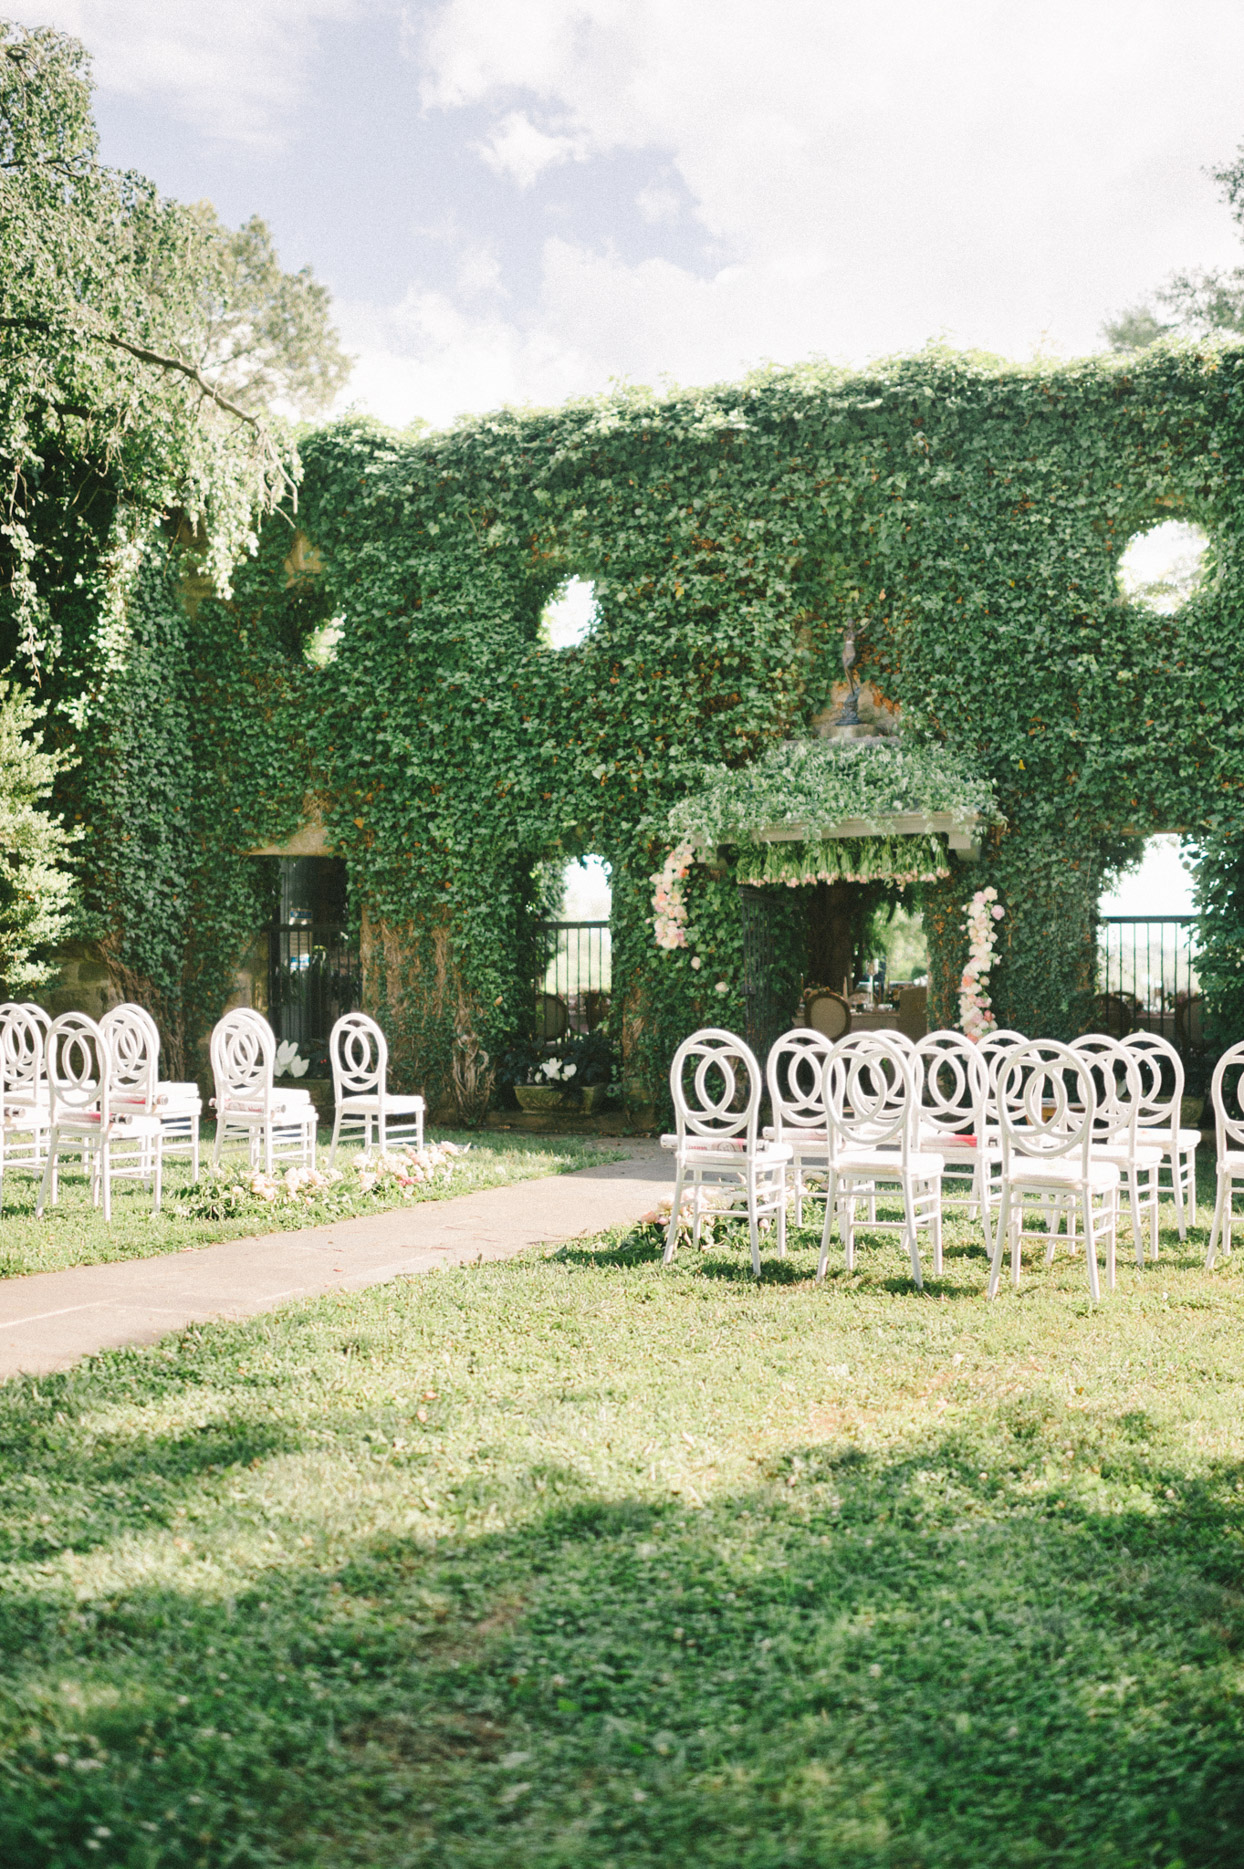 wedding ceremony set up on lawn against hedge wall